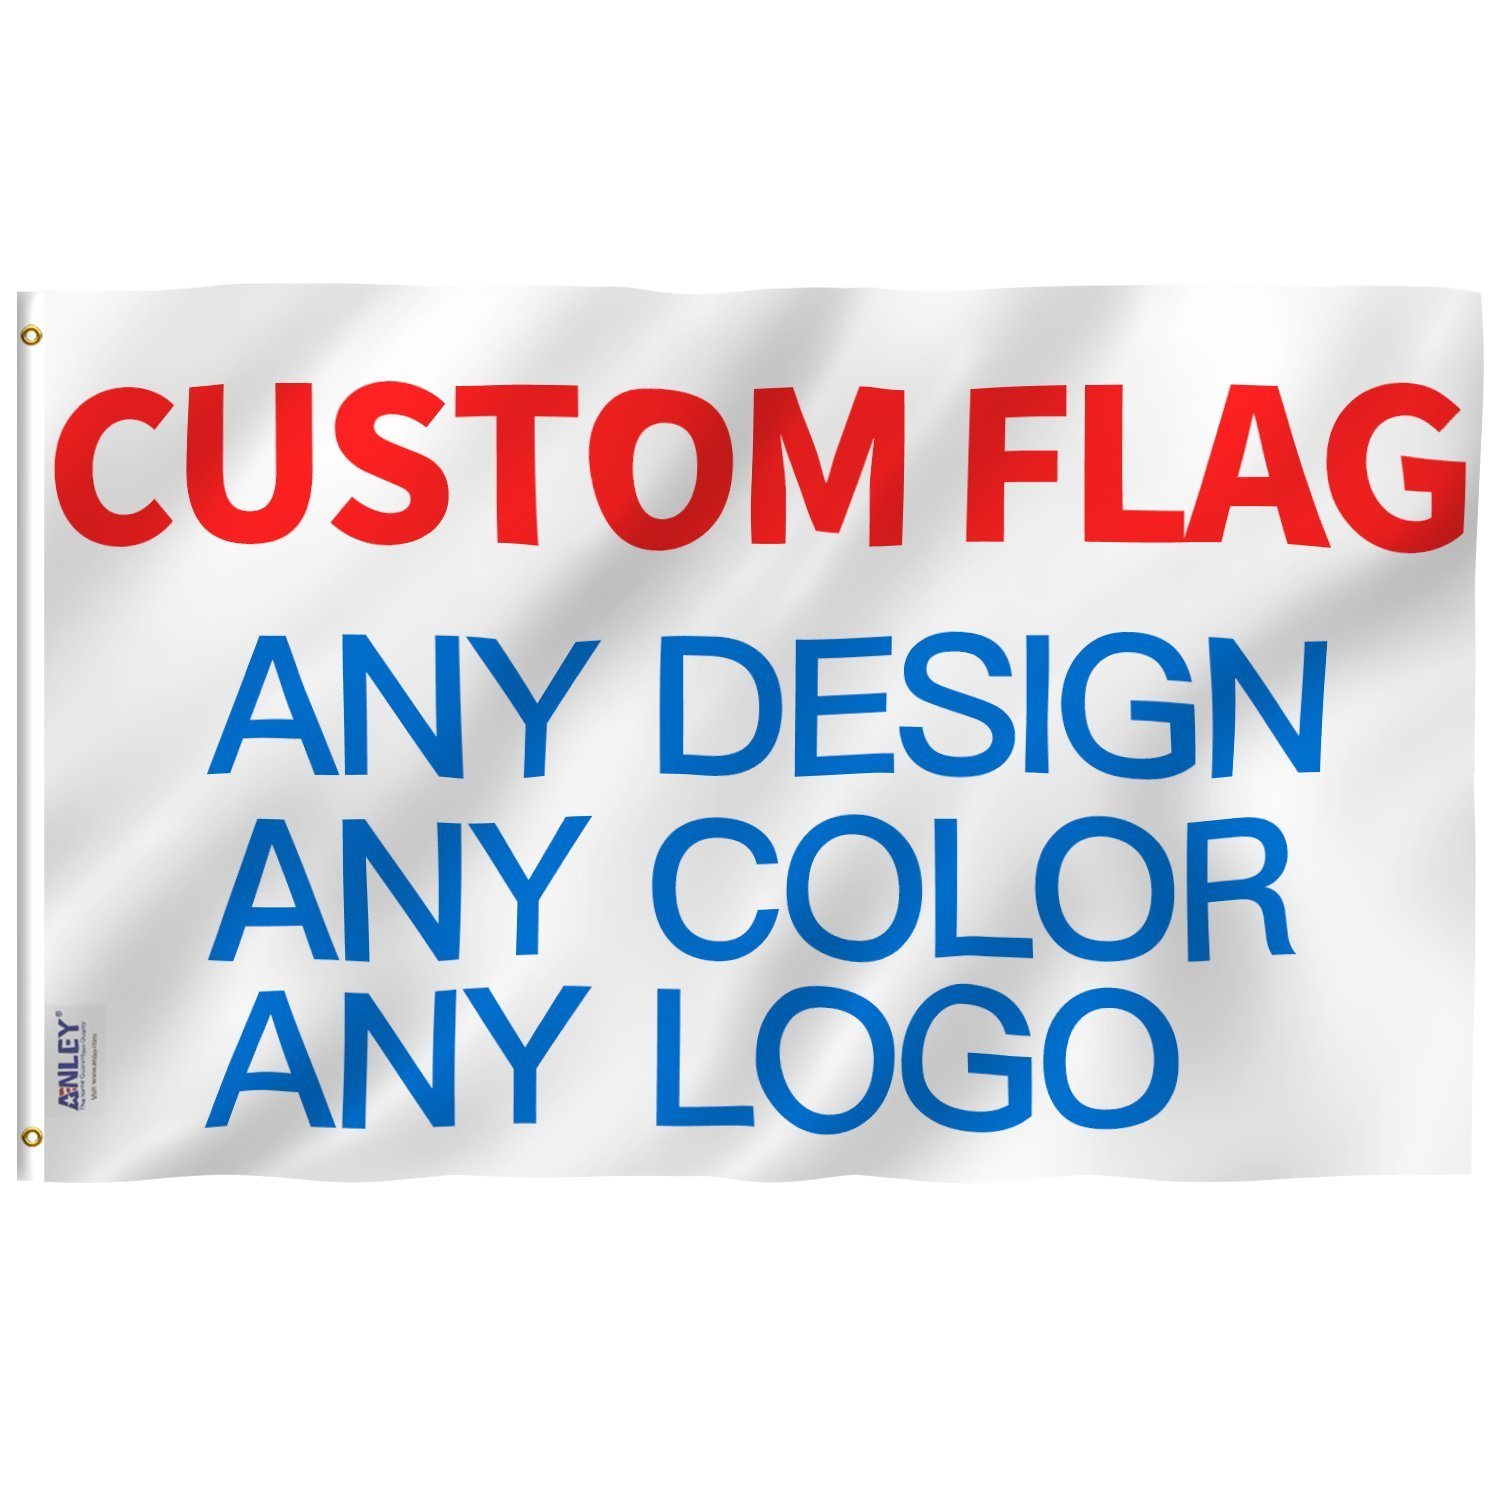 Anley CUSTOM FLAG 4x6 Ft Double Sided Customized Flags Banners - Print Your Own Logo/Design/Words - Vivid Color, Canvas Header and Double Stitched - 100D Polyester with Brass Grommets 4 X 6 Ft